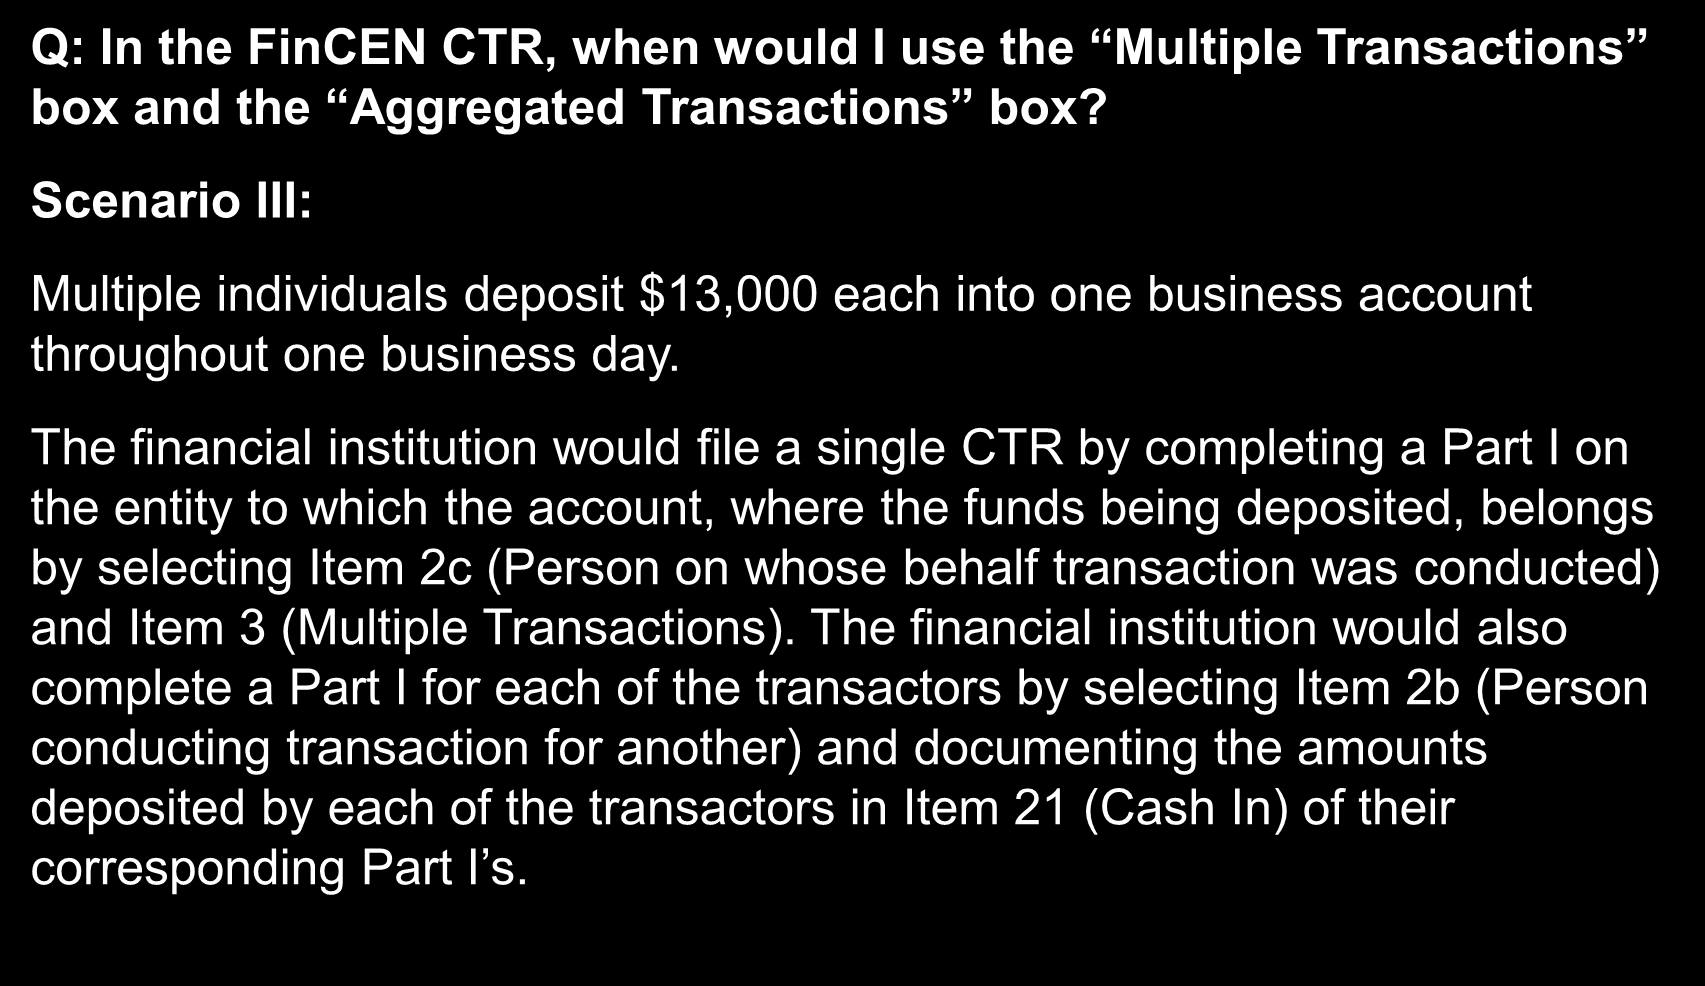 Frequently Asked Questions Q: In the FinCEN CTR, when would I use the Multiple Transactions box and the Aggregated Transactions box?